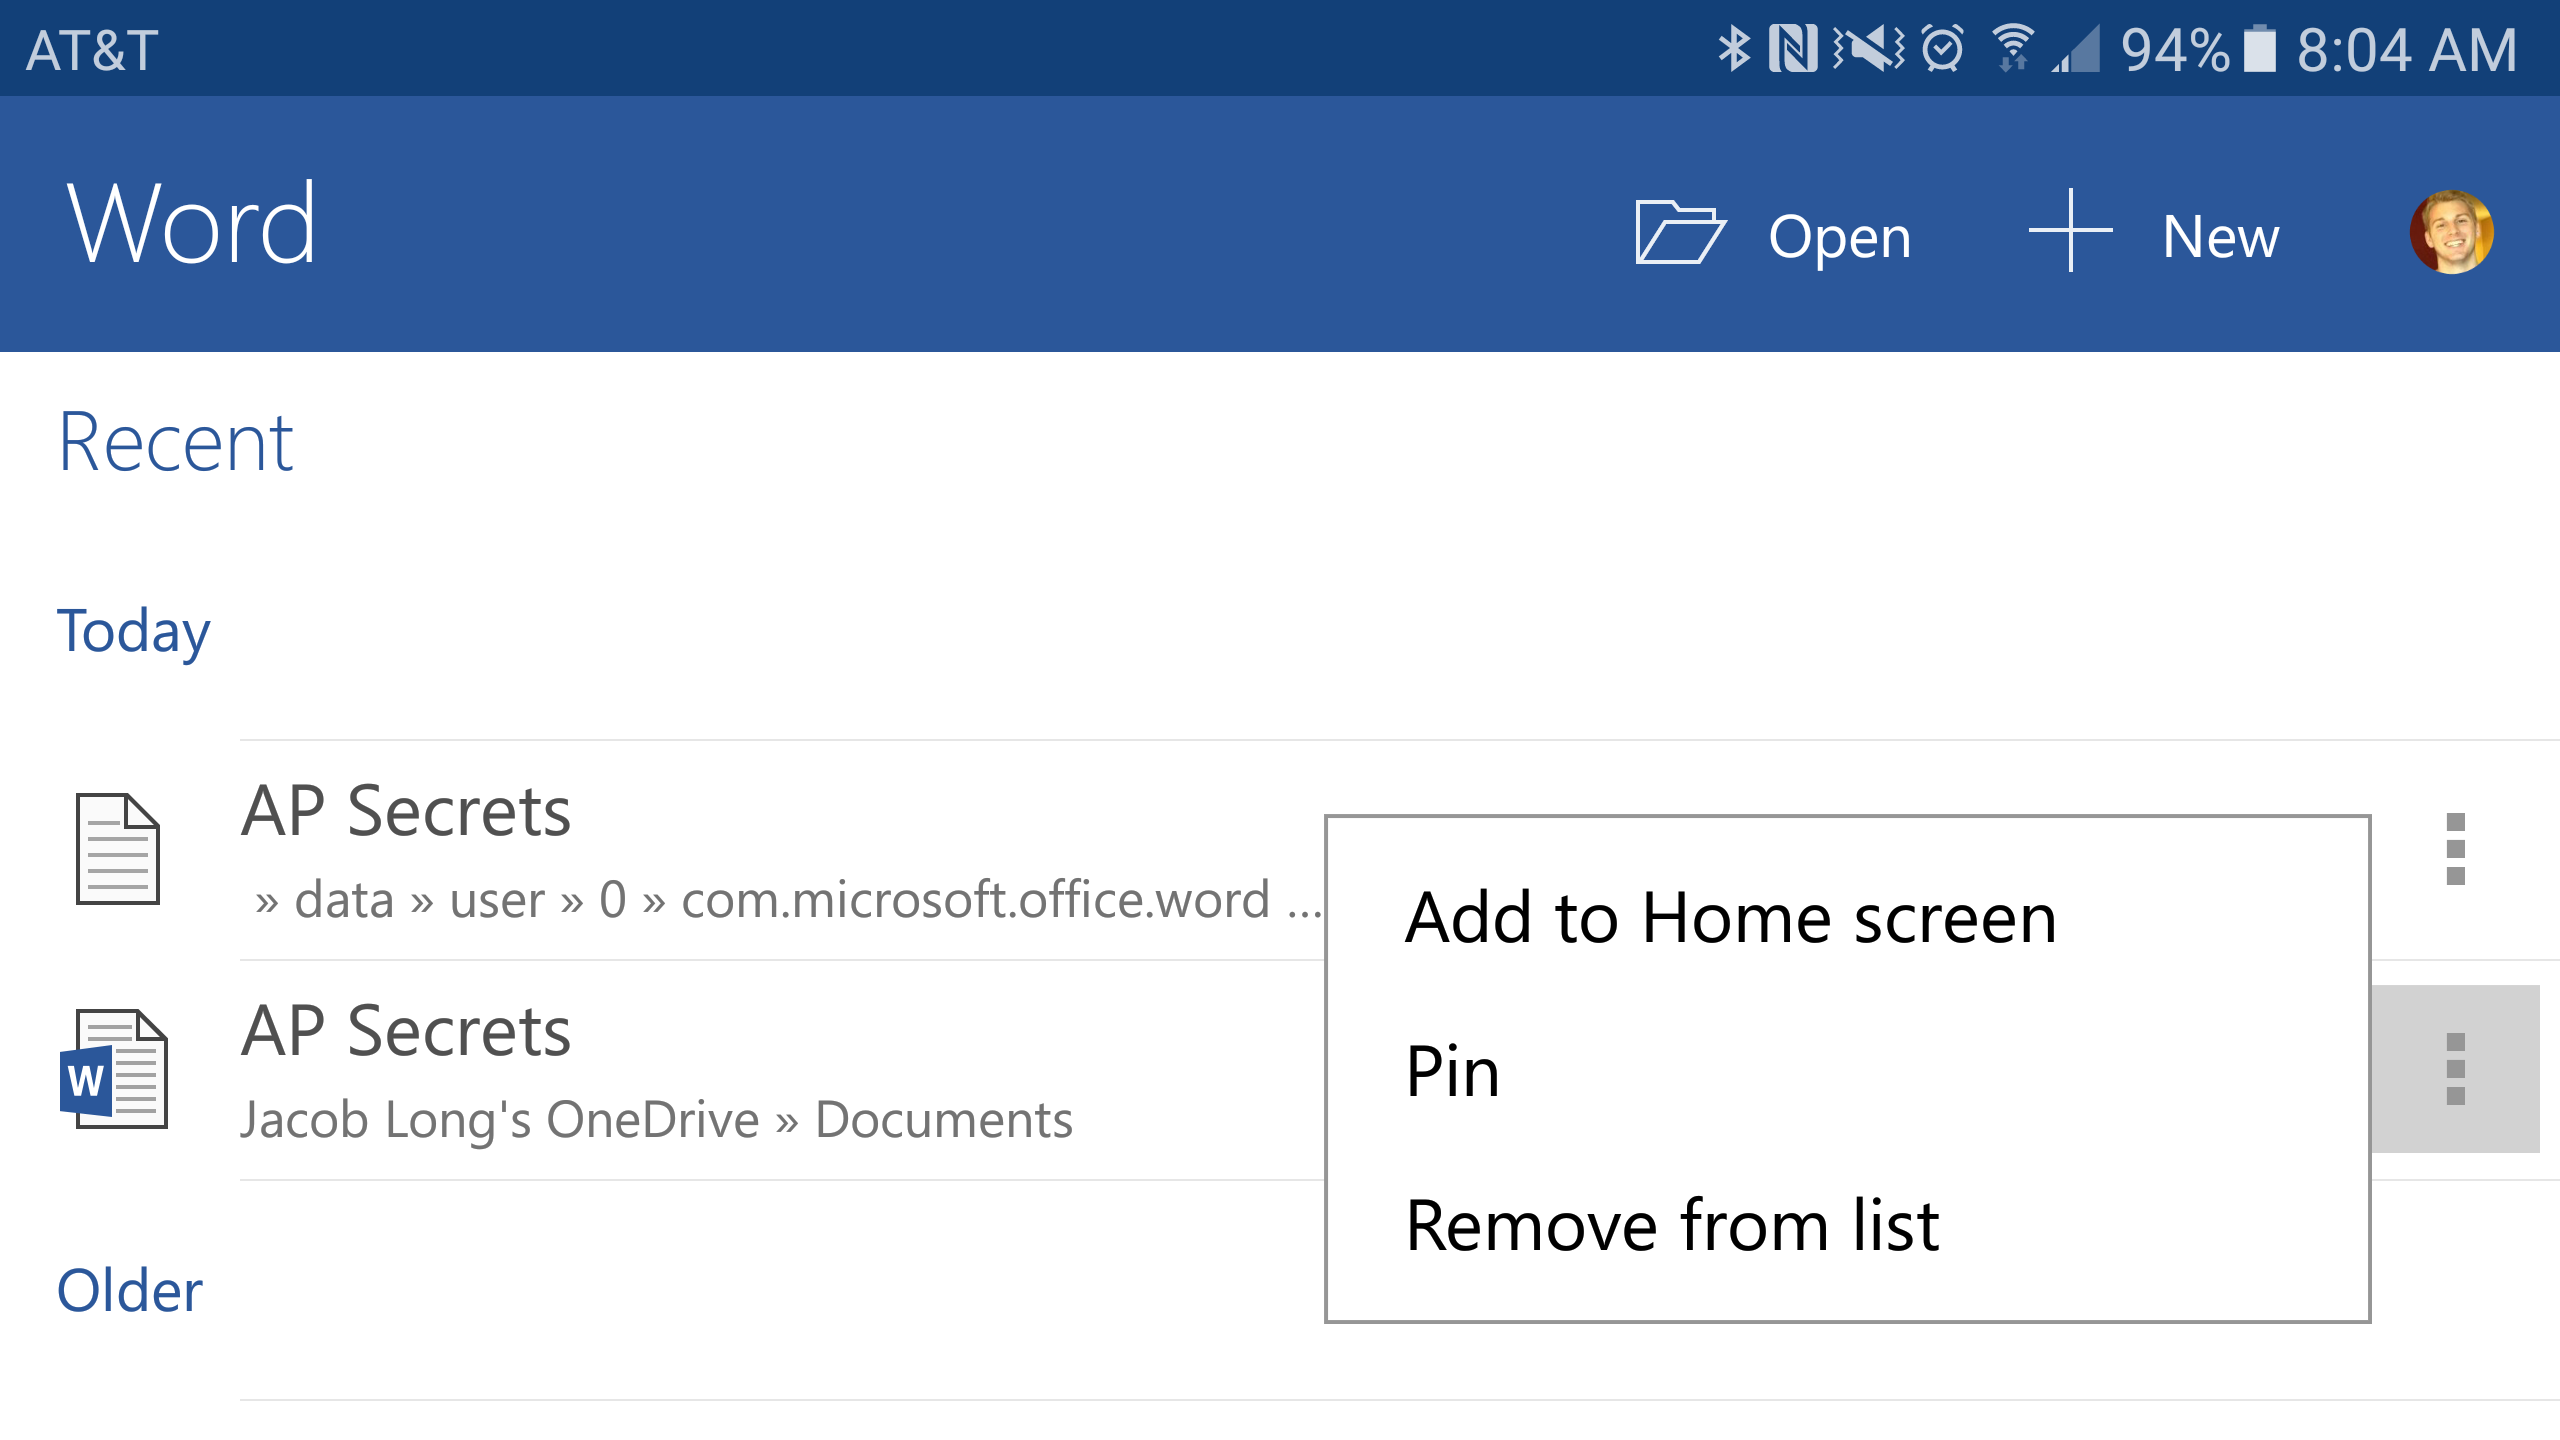 Latest Android update for Microsoft Word, PowerPoint, and Excel